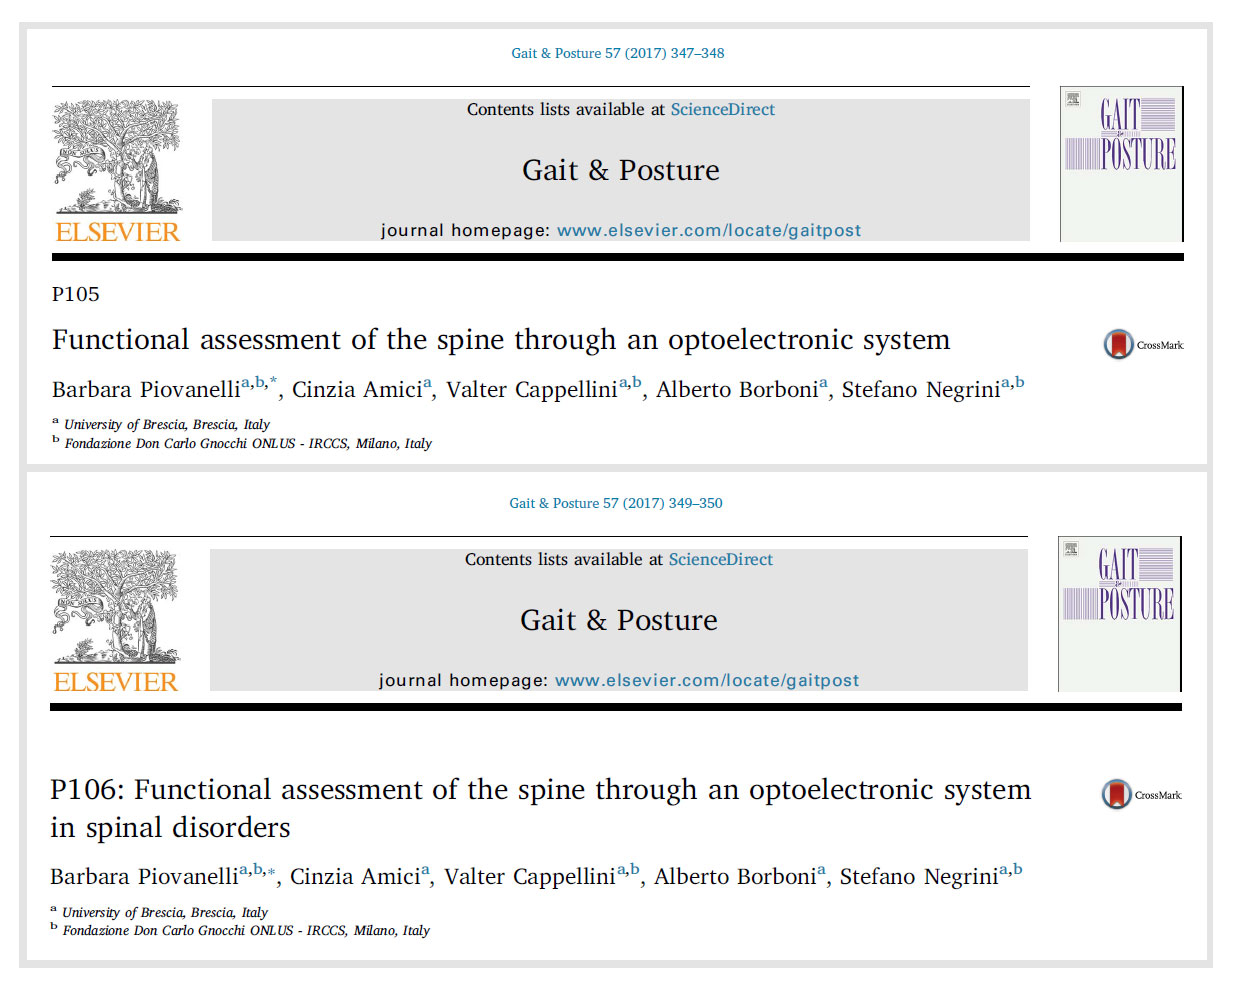 New Studies On Functional Evaluation Of The Spine With Bts At Esmac